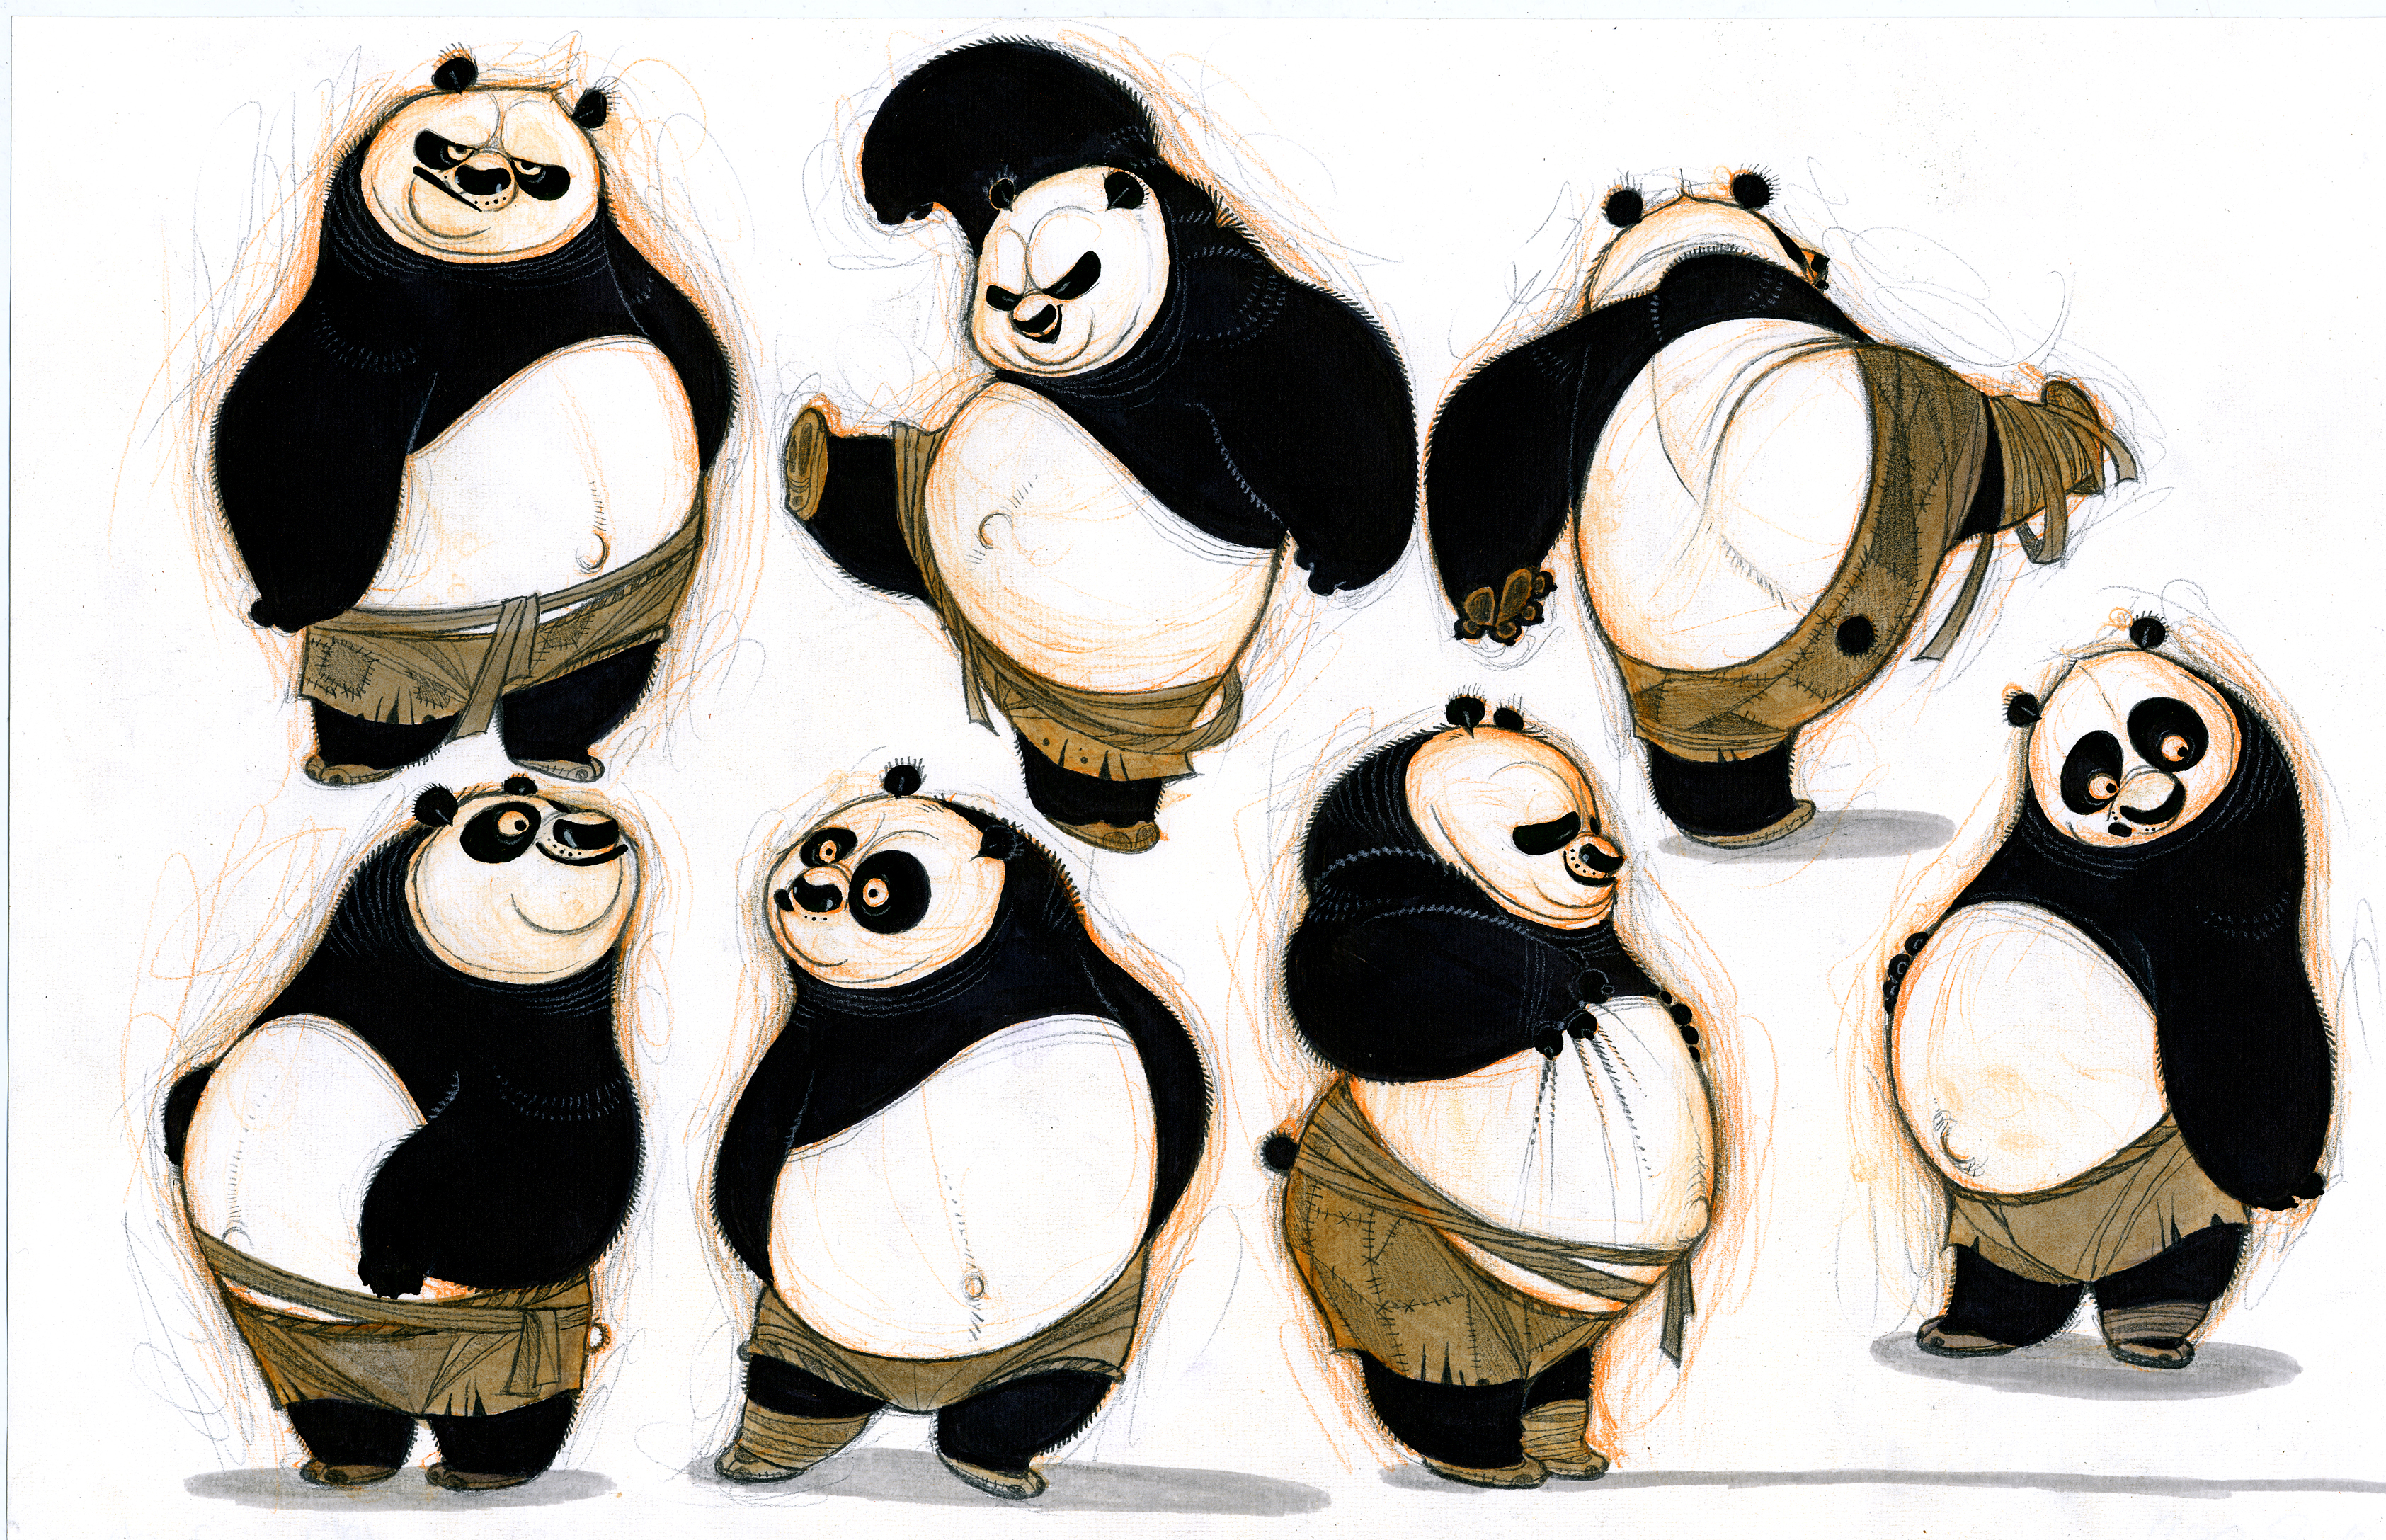 Sketches of Kung Fu Panda 2